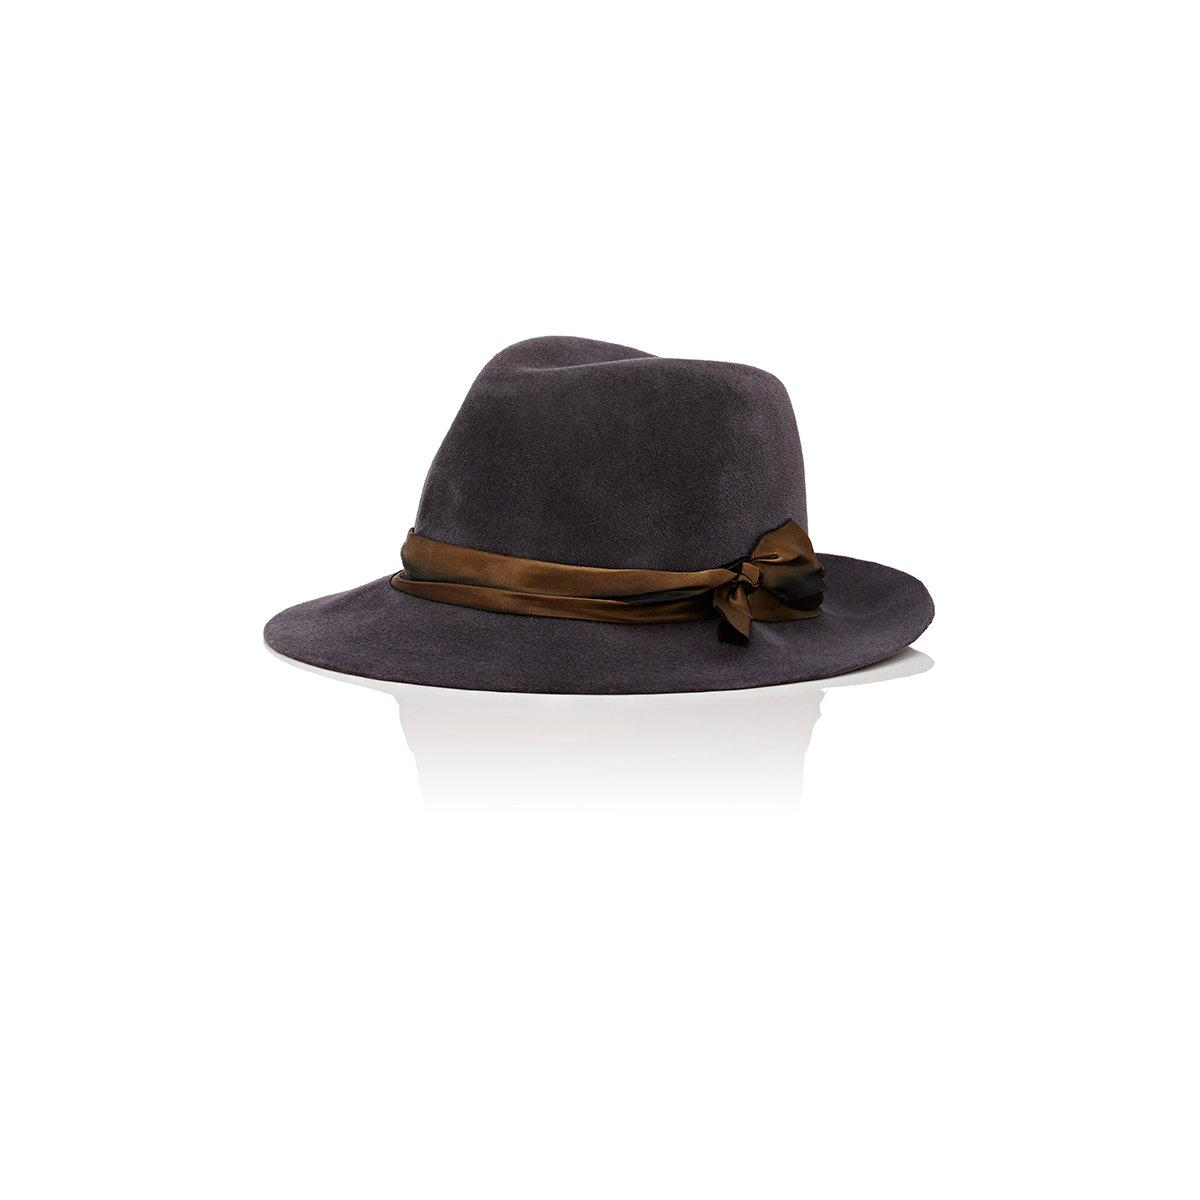 756111f7fc0 Lyst - Lola Hats Mishap Rabbit Fur Felt Fedora in Gray for Men